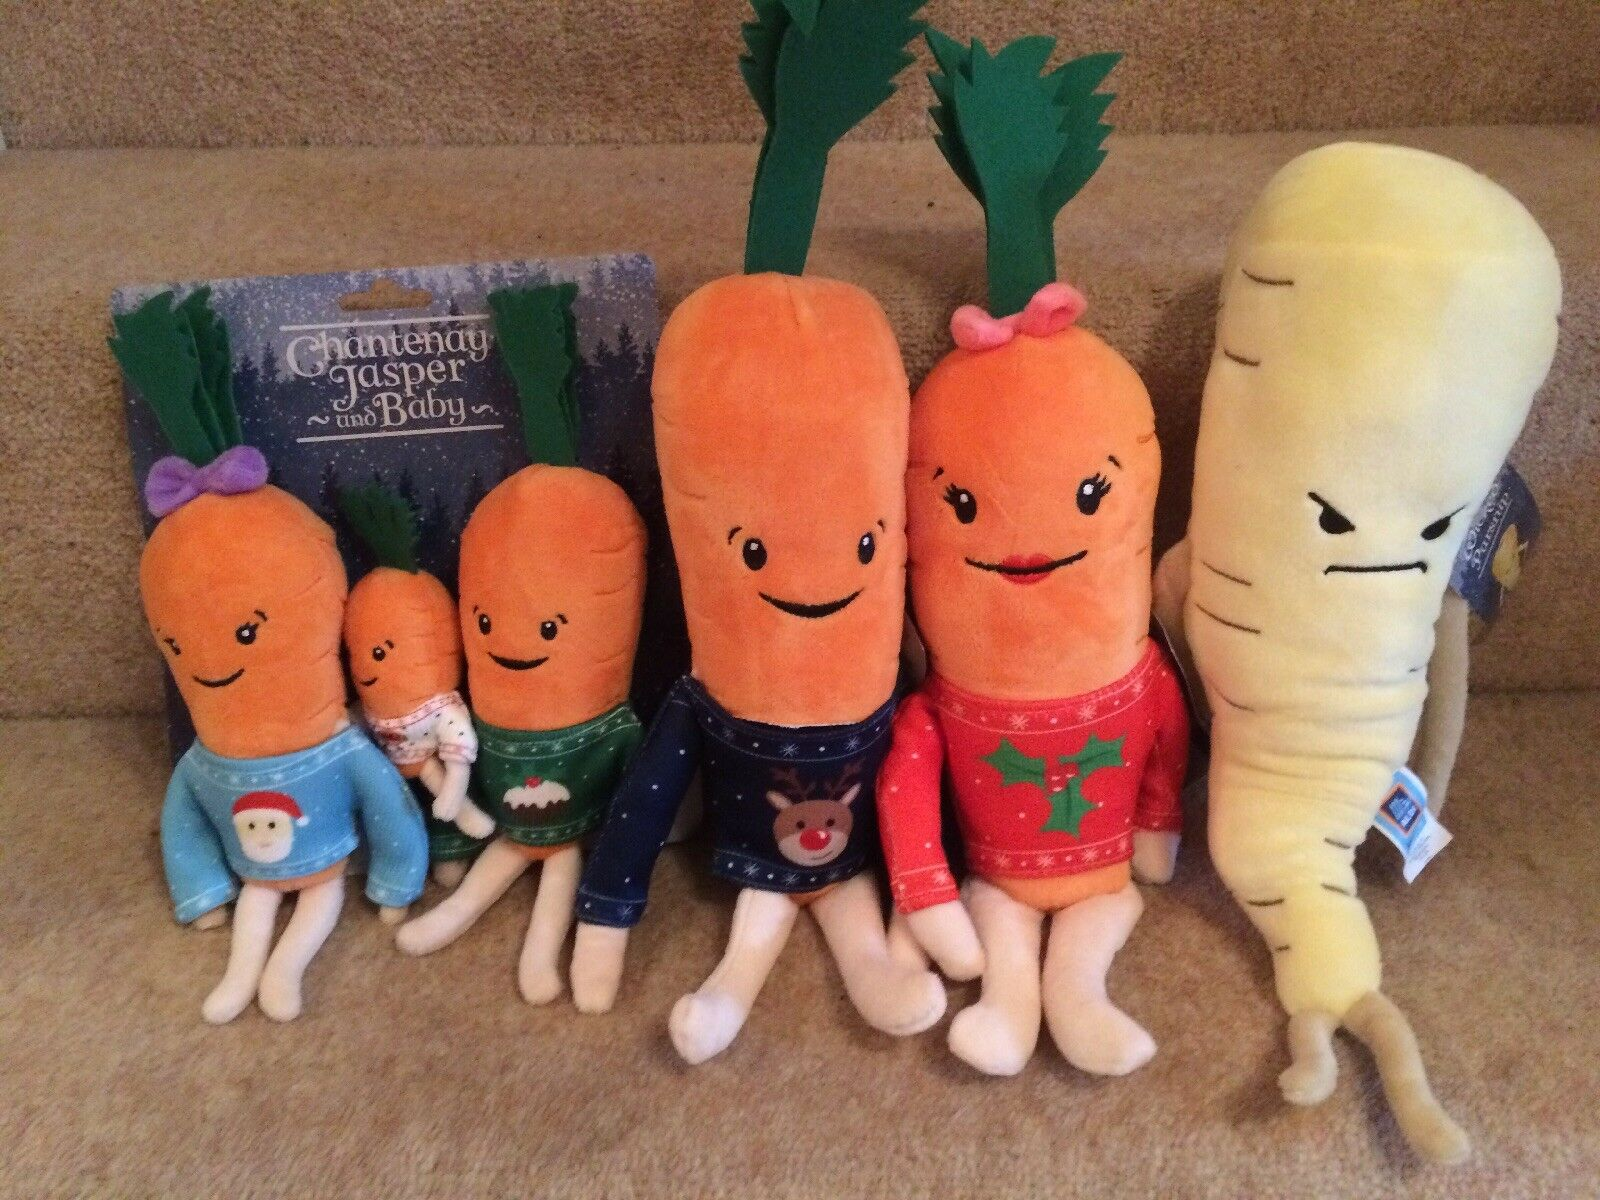 Aldi Kevin The Carred Katie Chantenay Jasper Baby Pascal EvilParsnip Full Family